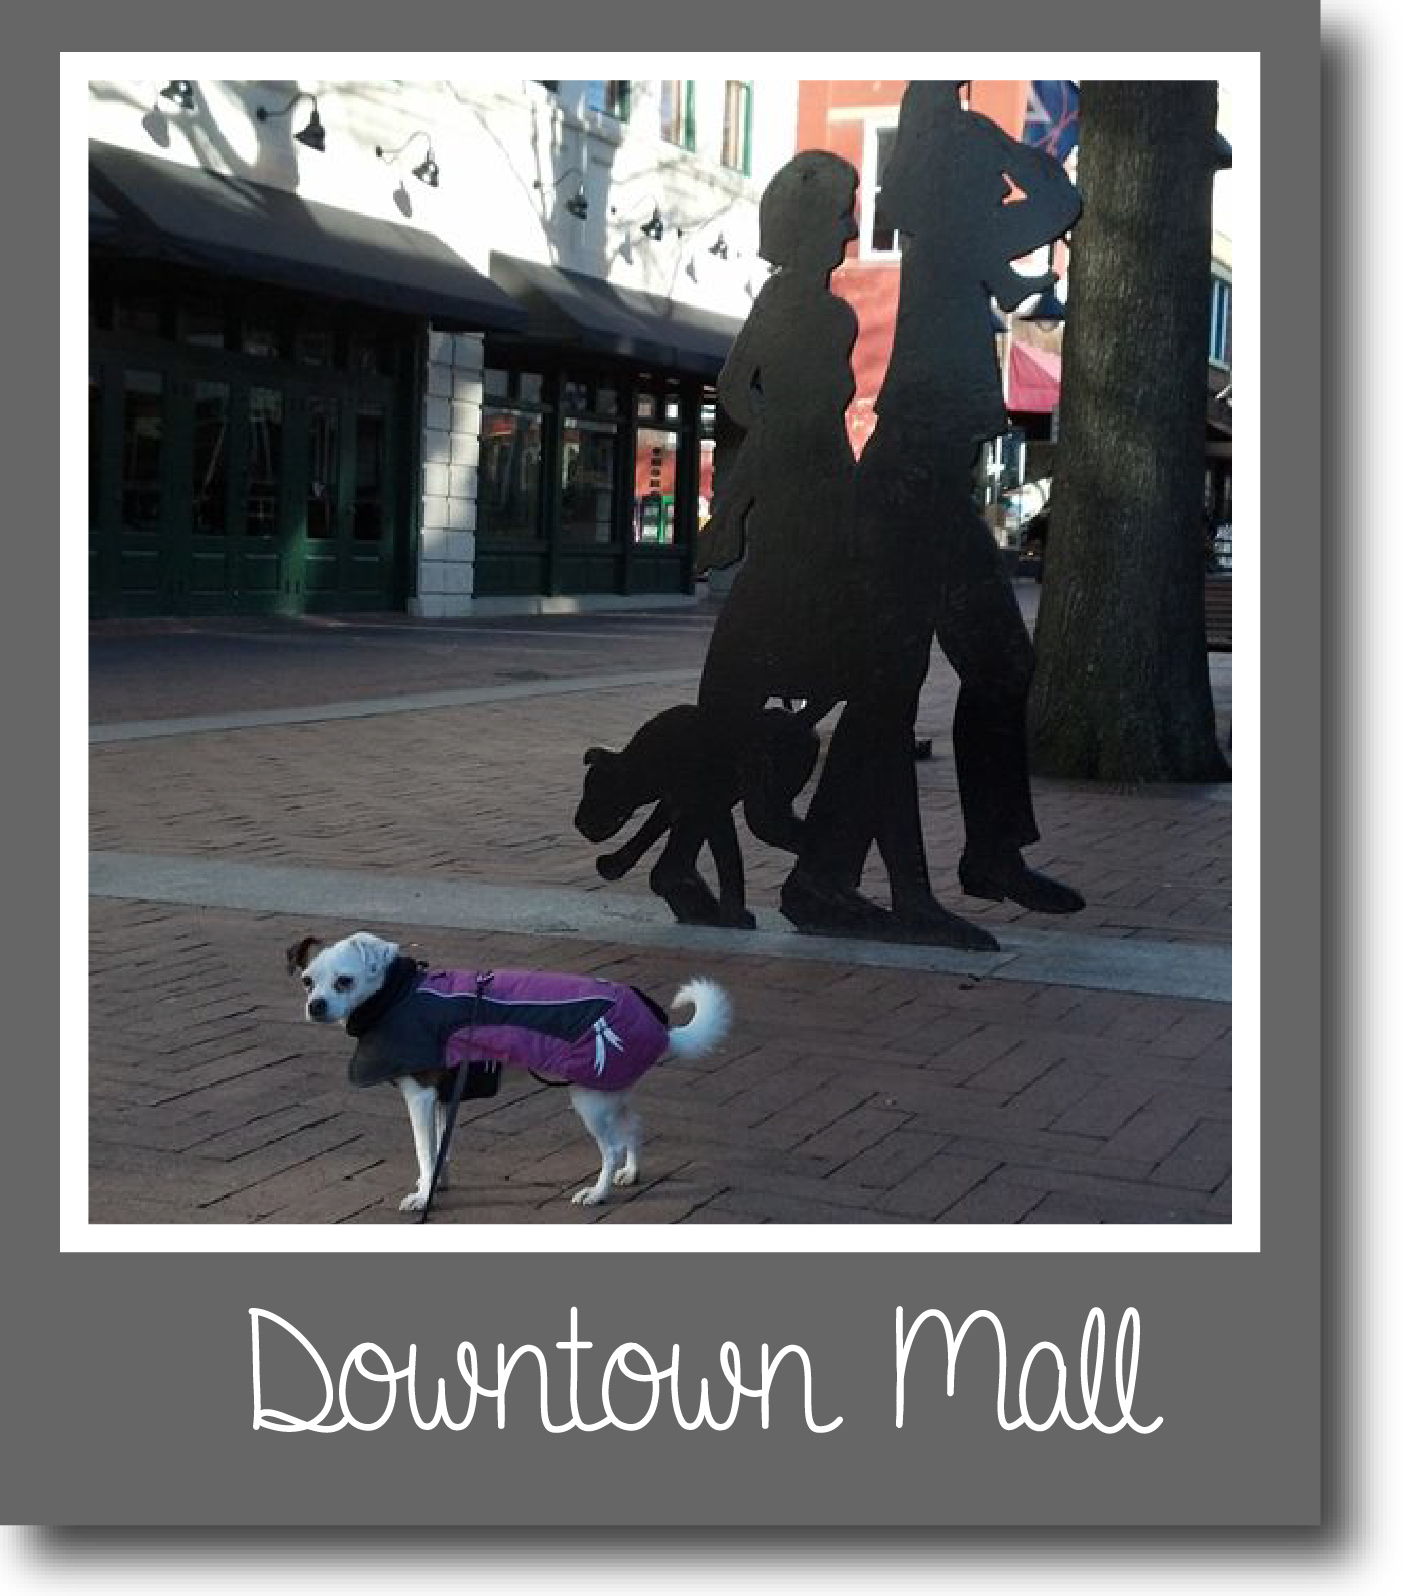 Tilly-DowntownMall-01